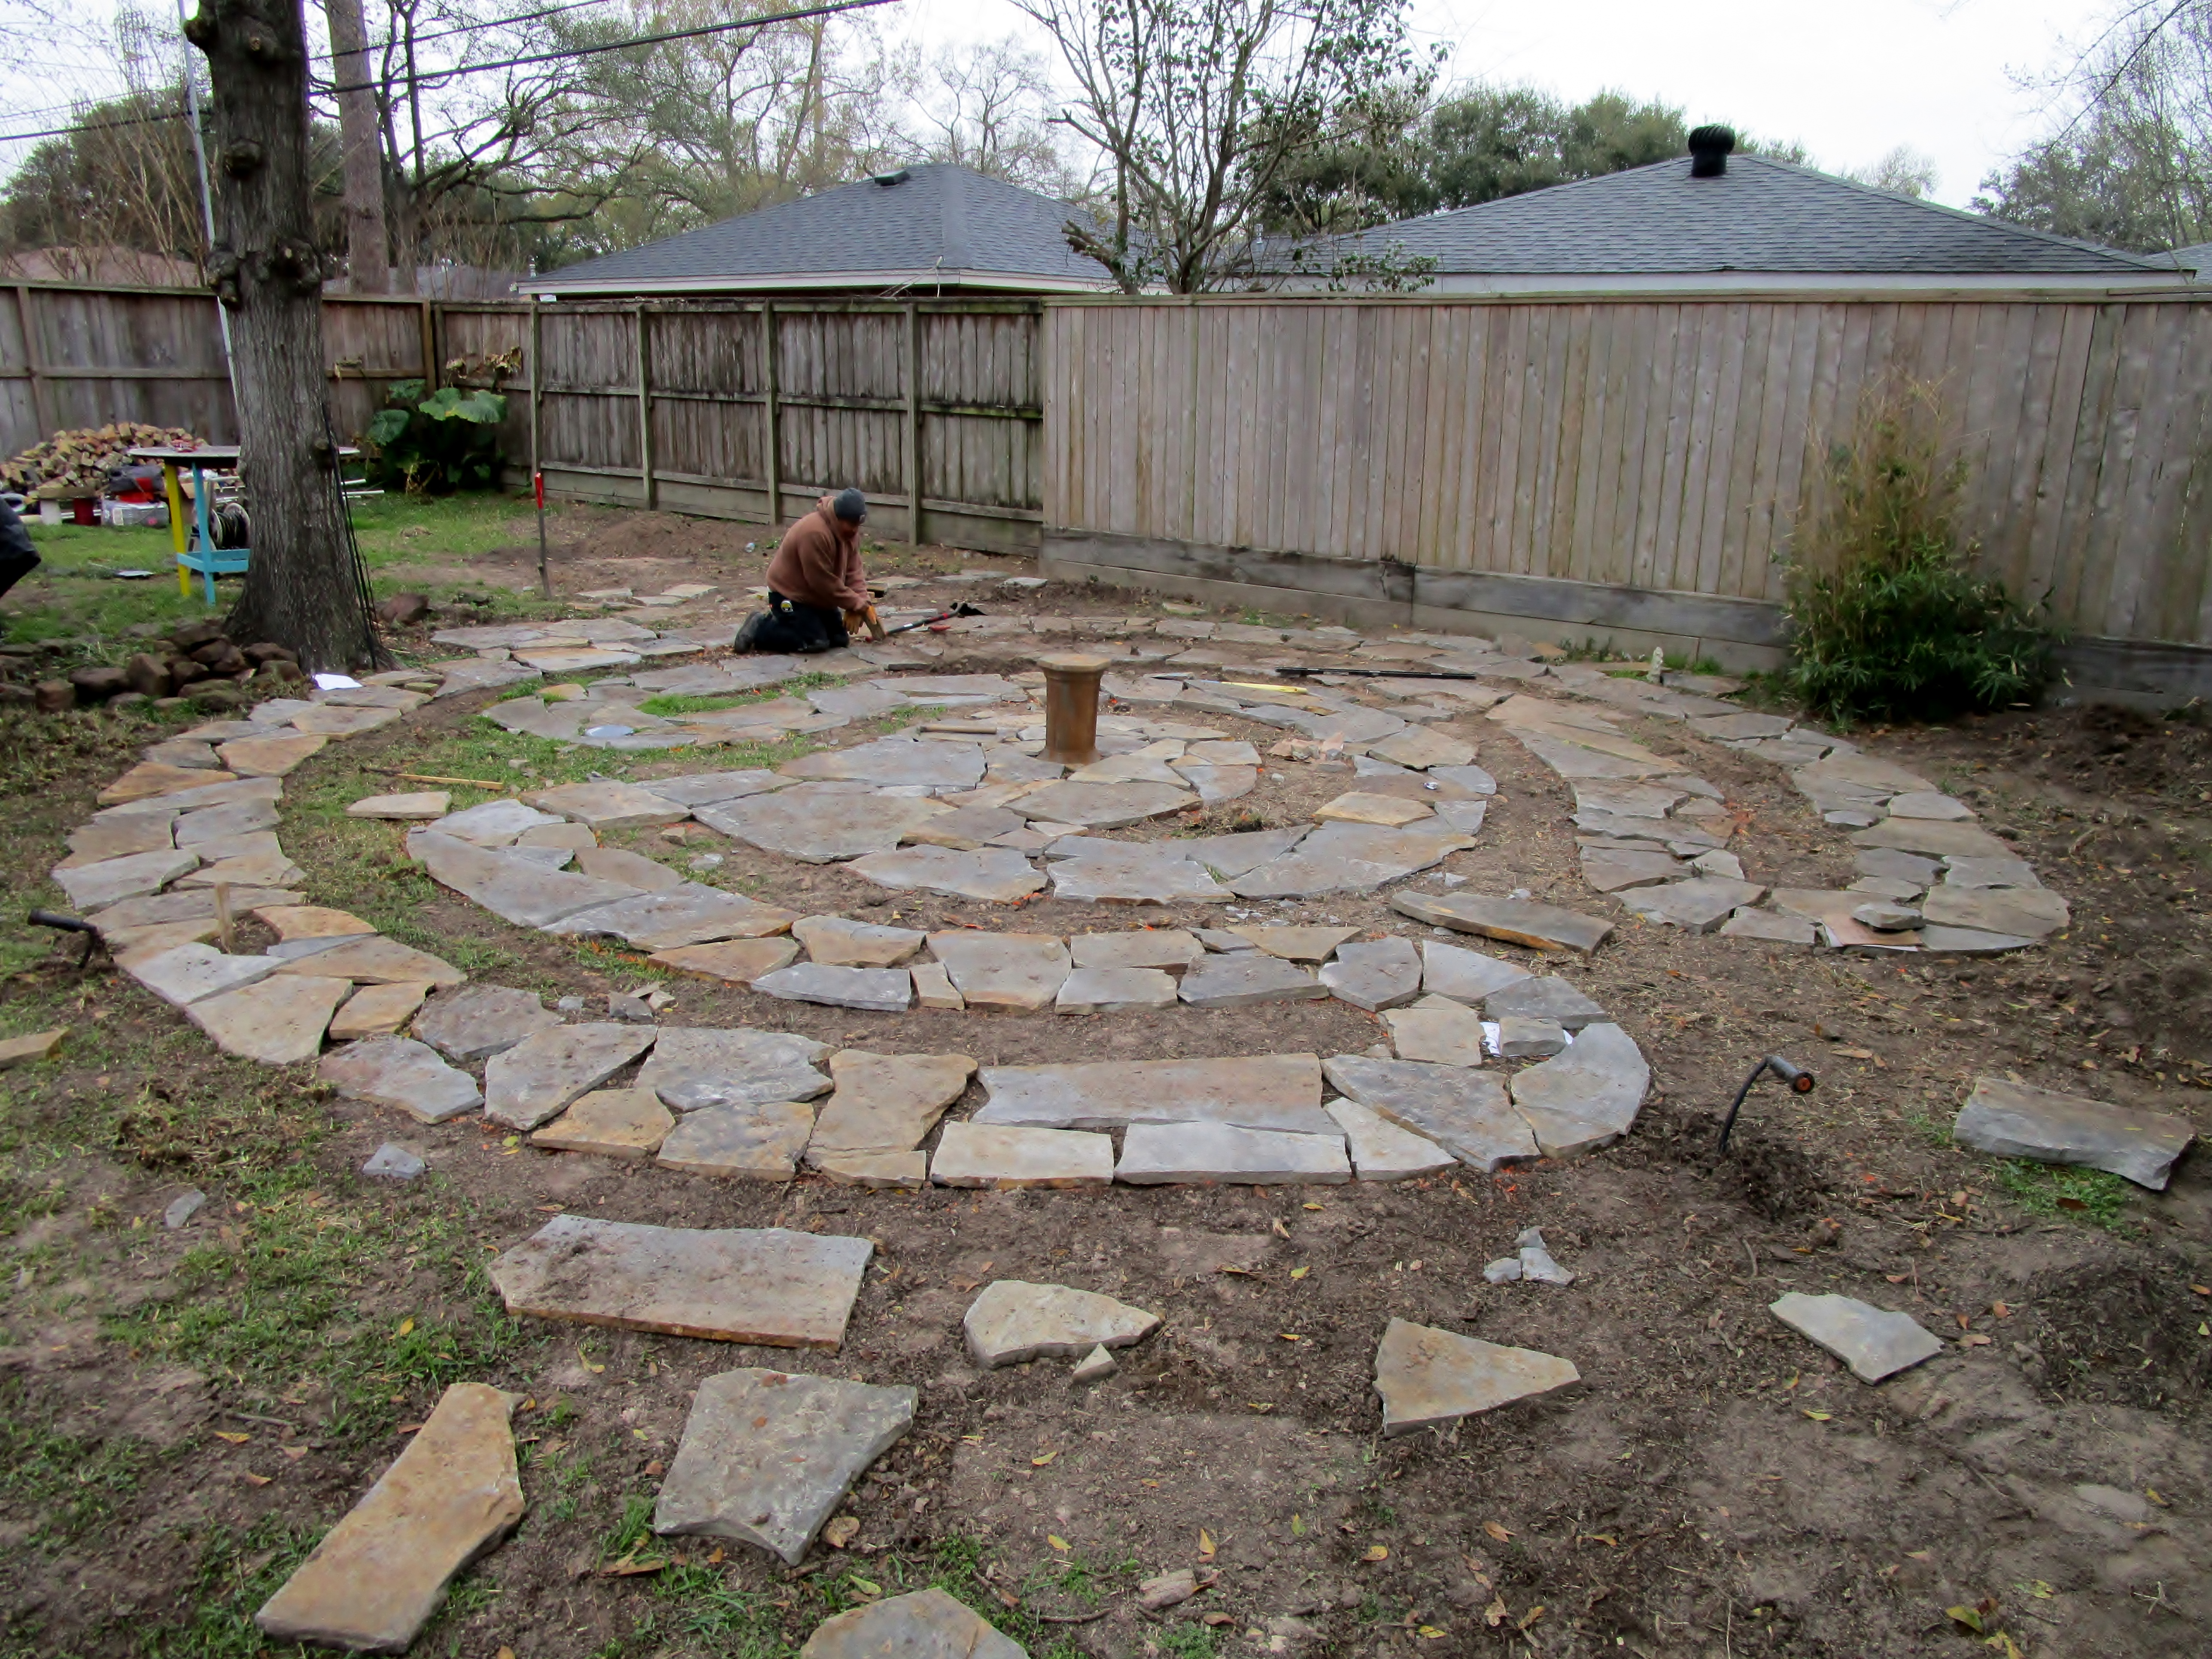 Designing and Constructing a Labyrinth (and sharing a bit of ... on easy prayer labyrinth designs, simple labyrinth design, outdoor labyrinth design,